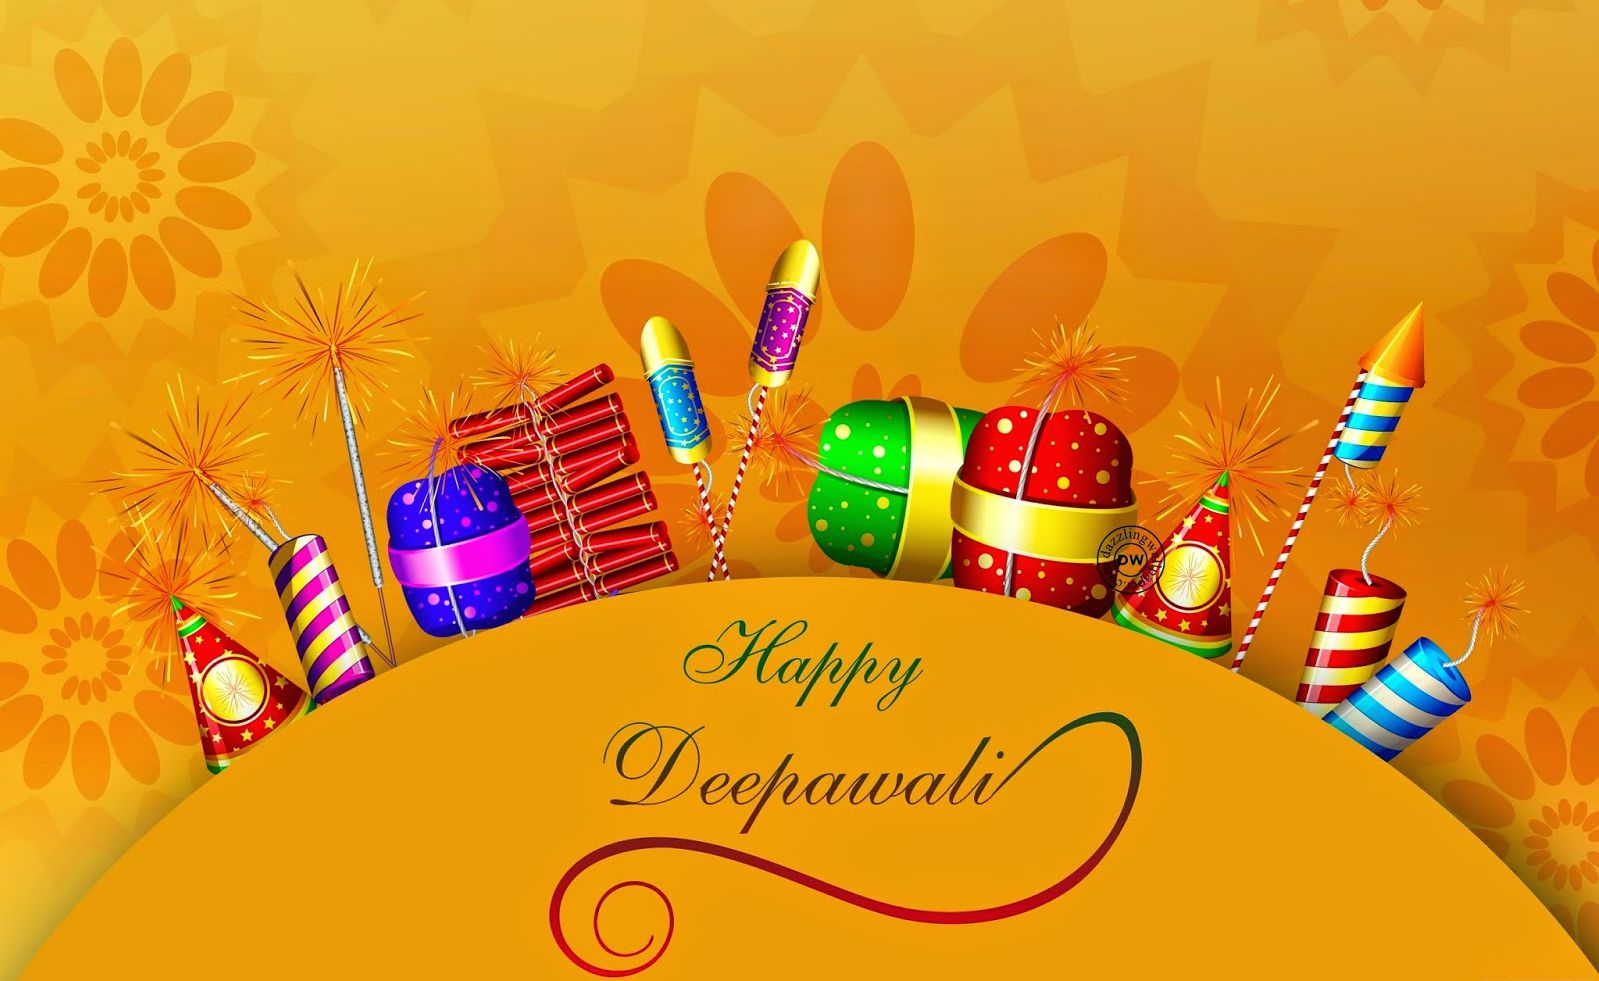 Wishing You Happy Diwali with Images